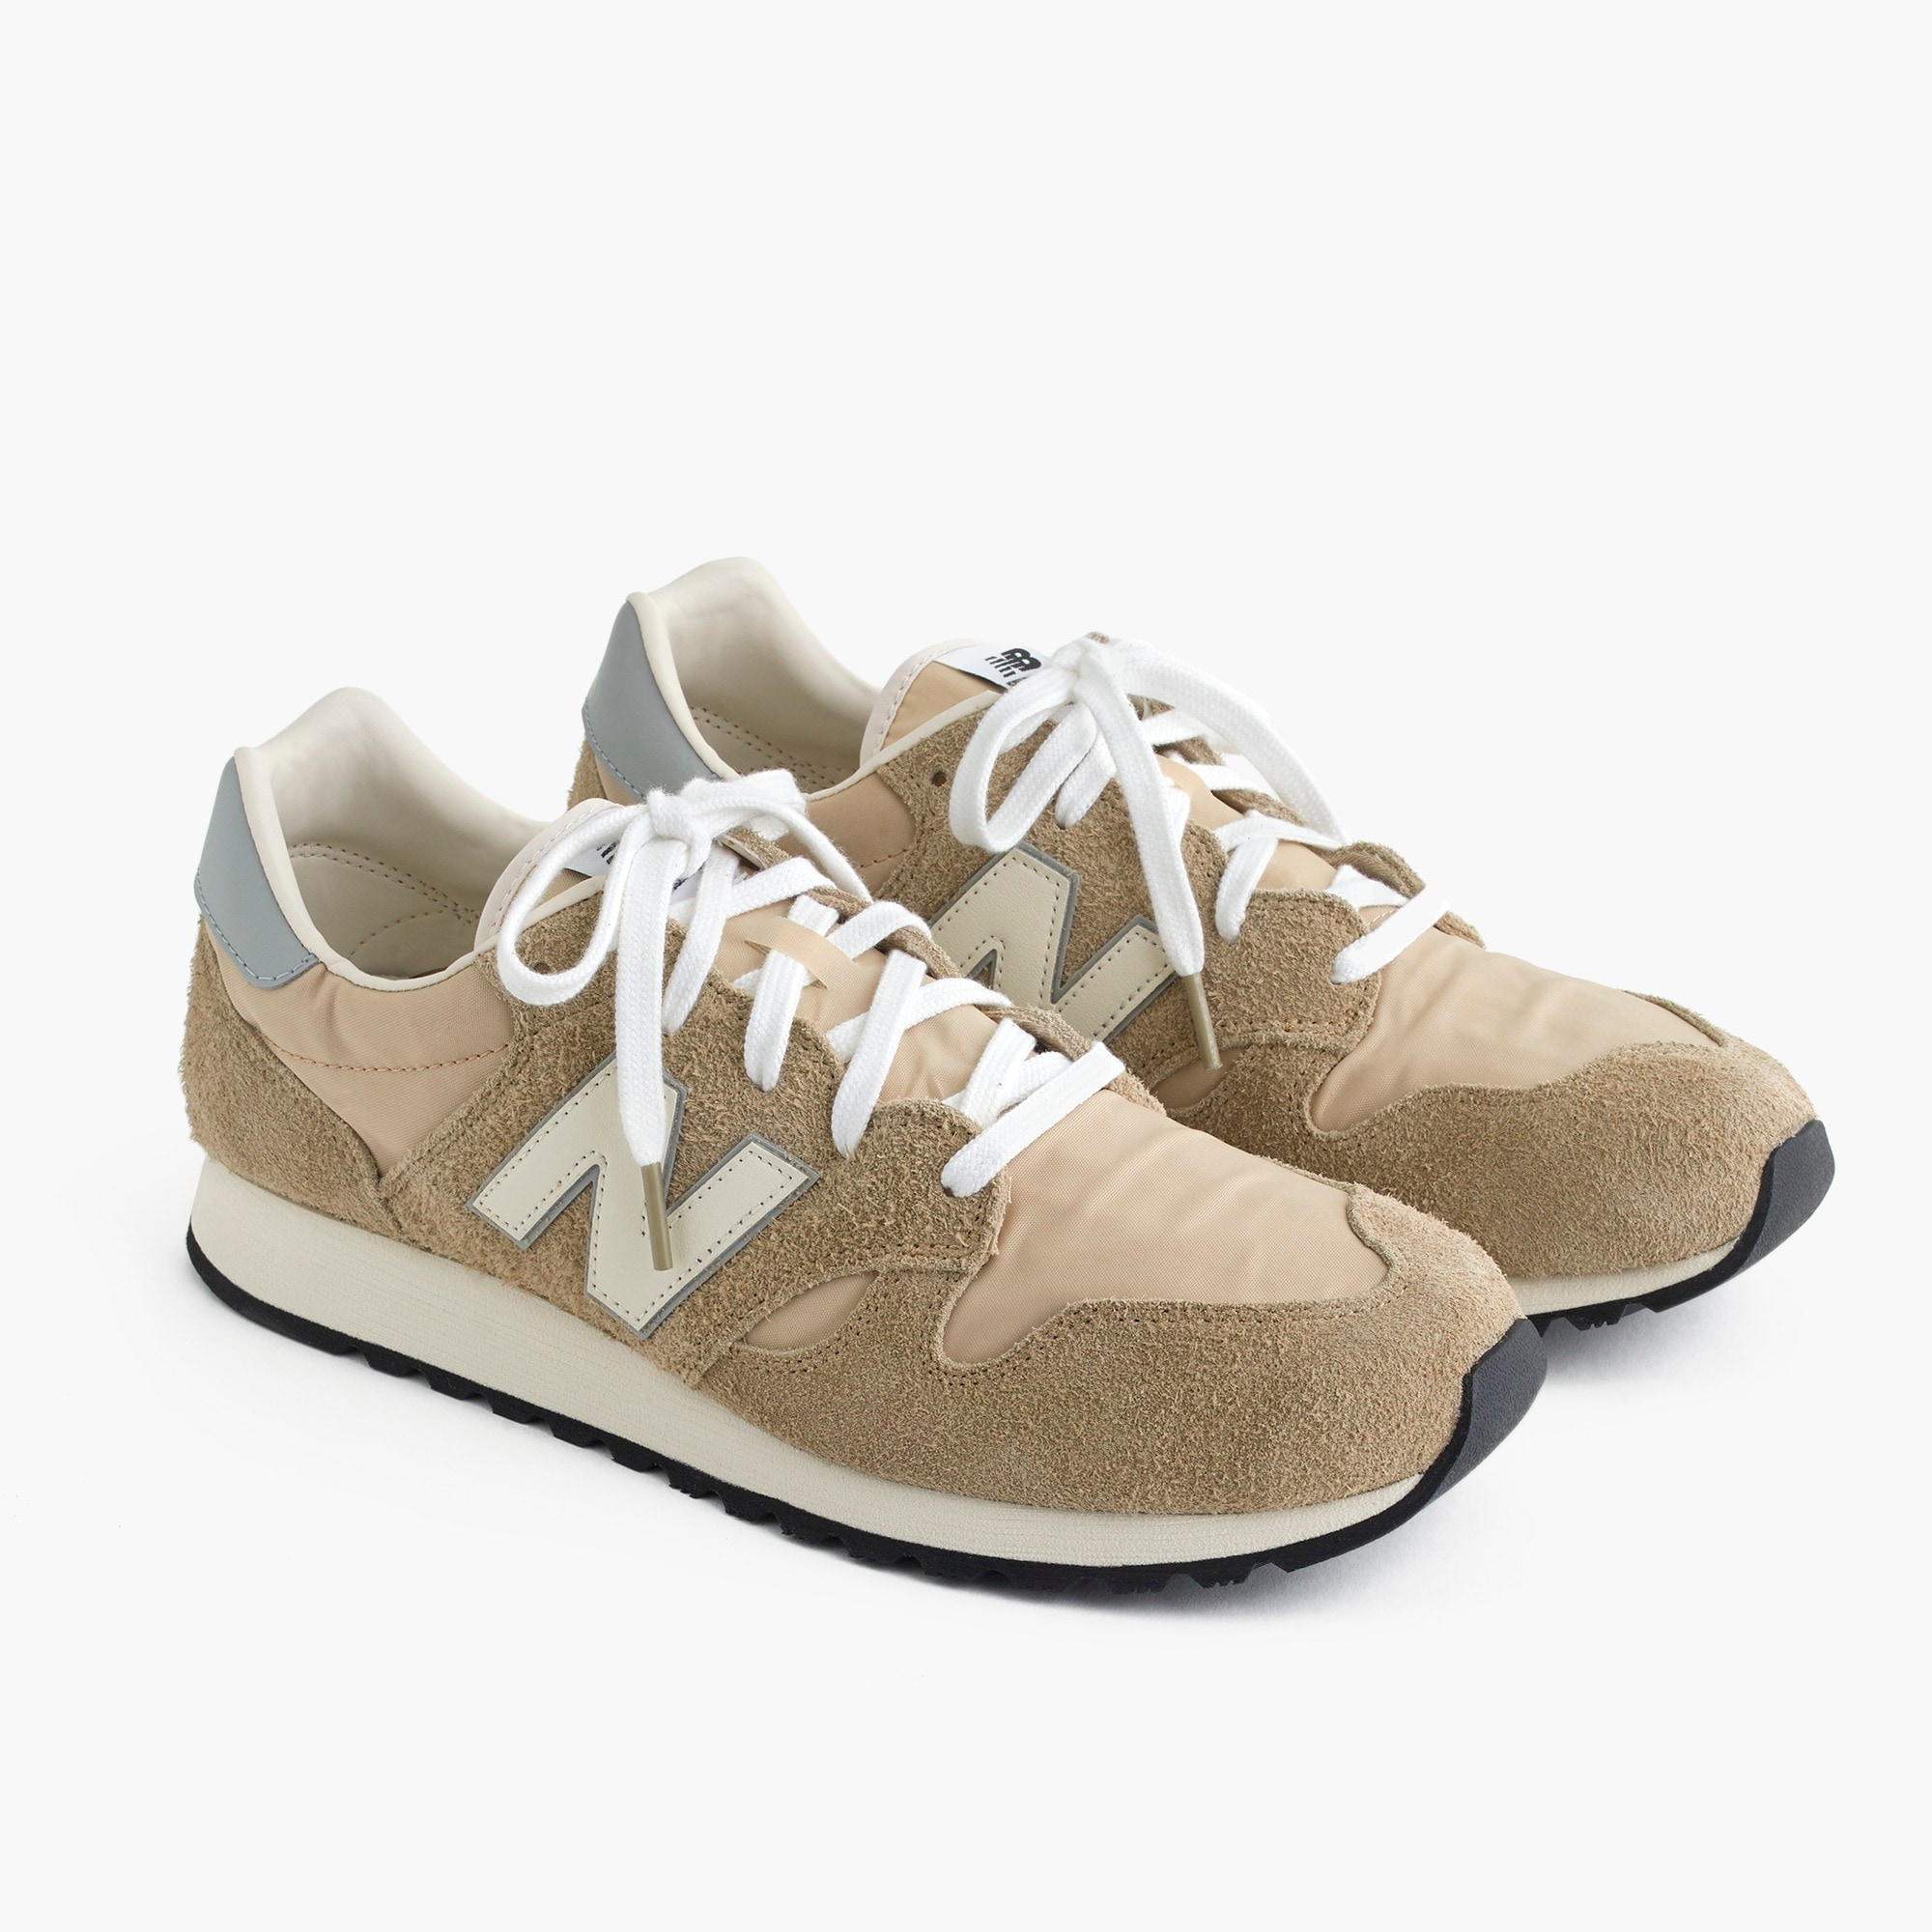 men's new balance® for j.crew 520 sneakers in hairy suede - men's footwear